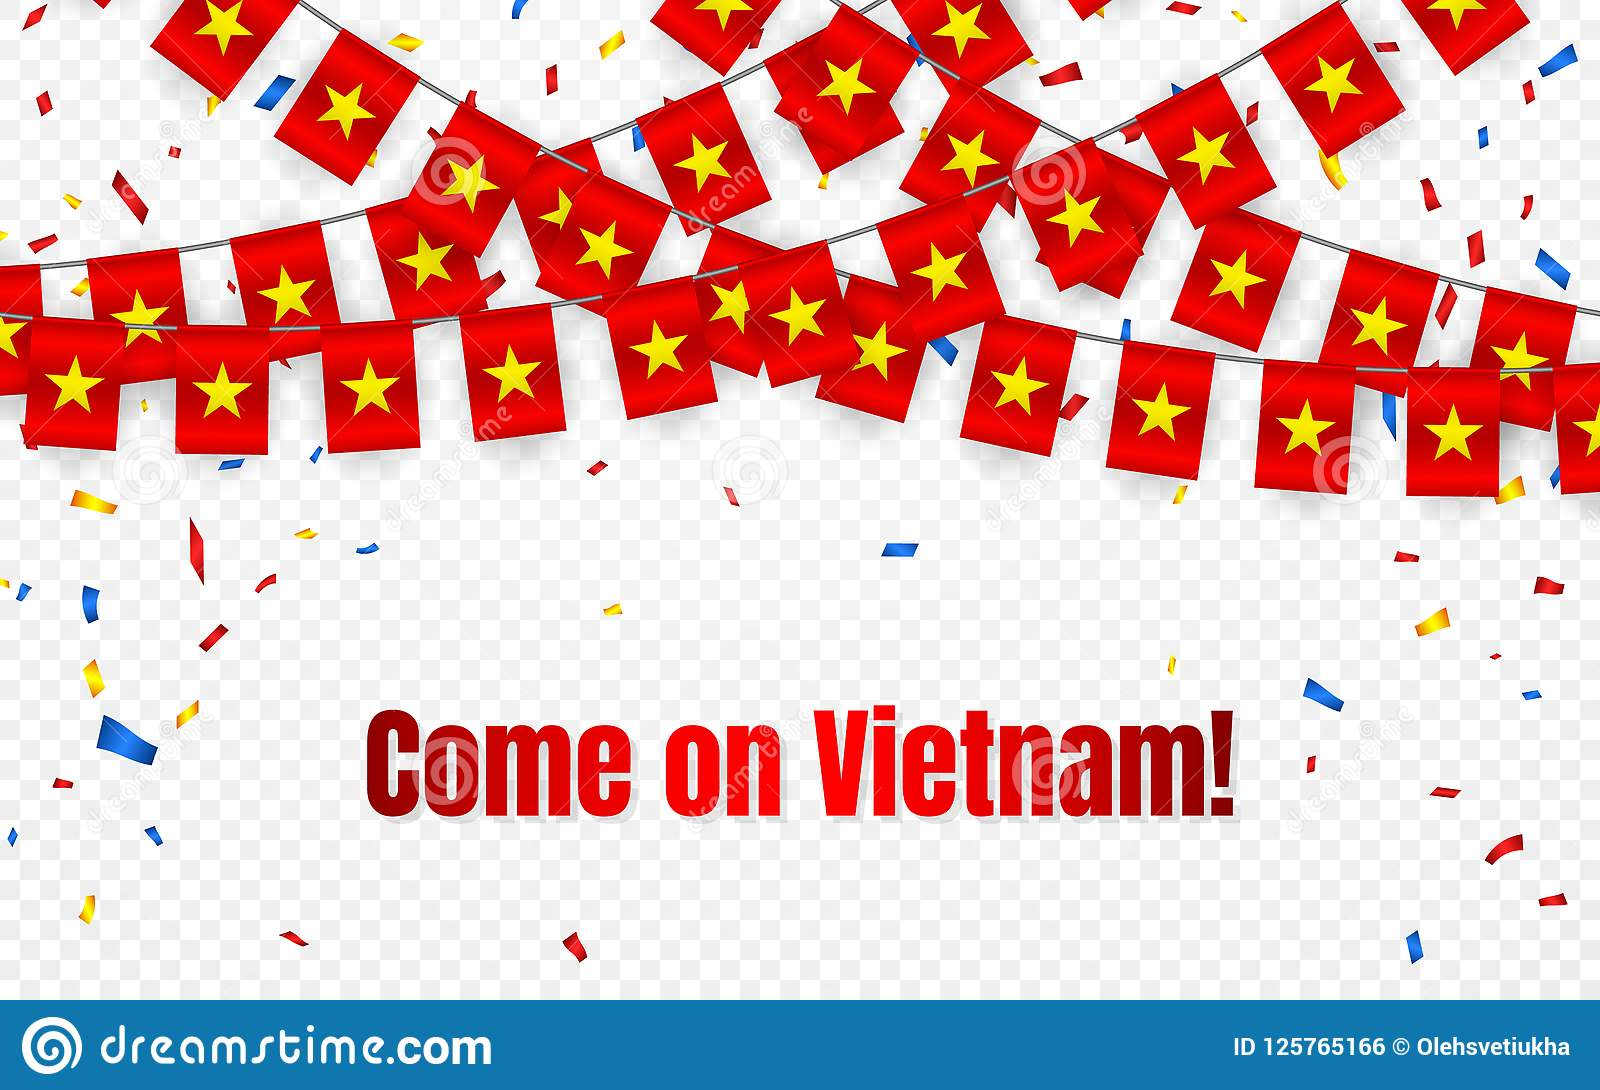 Vietnam Garland Flag With Confetti On Transparent Background Hang Bunting For Celebration Template Banner Vector Illustration Stock Vector Illustration Of Holiday Celebrate 125765166